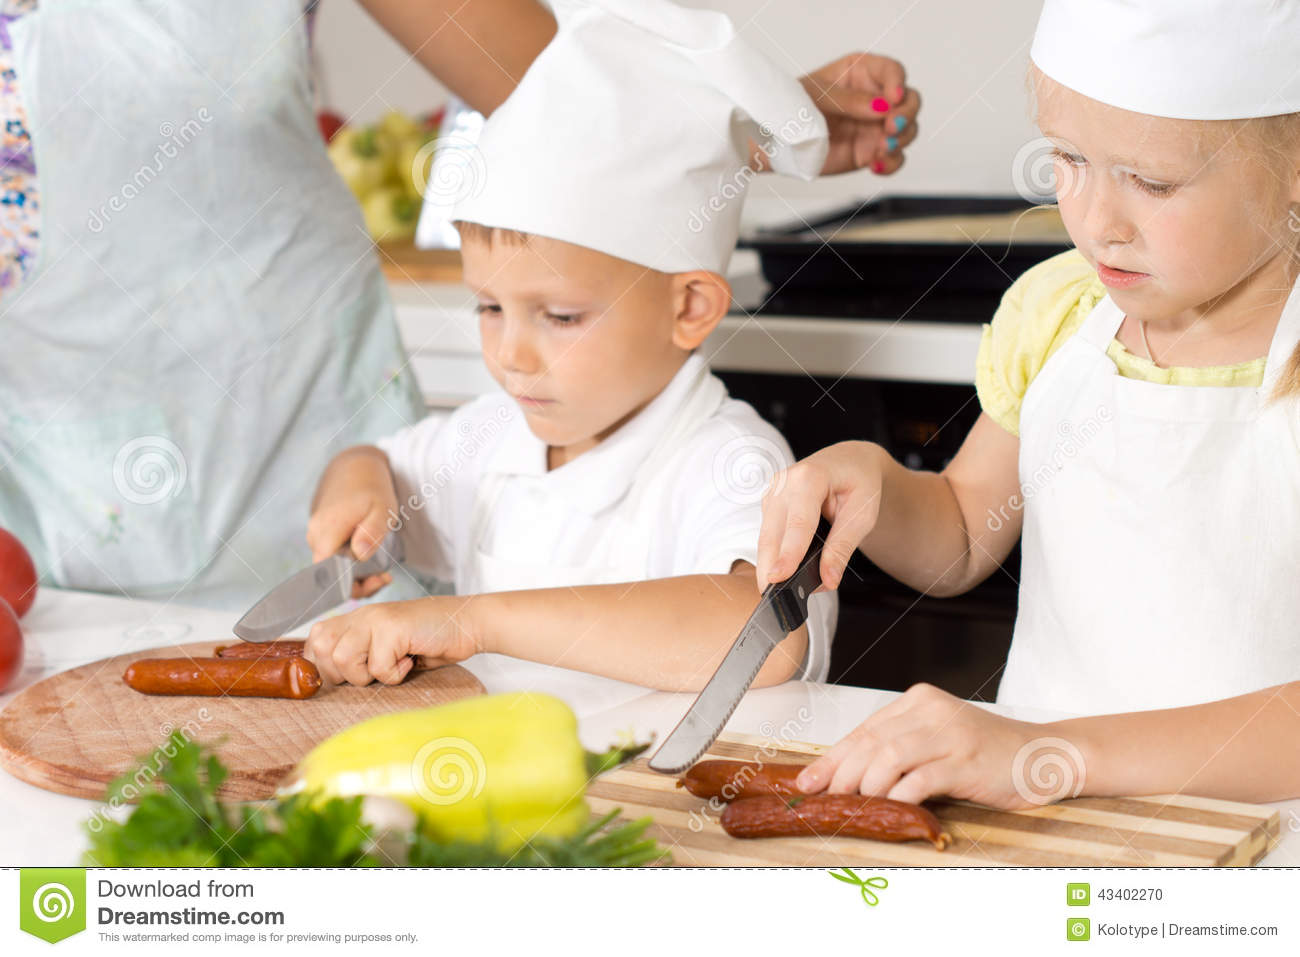 should boys learn to cook Think again men should learn how to cook as well  since the last few  decades we have been hearing about cooking in a very negative way.